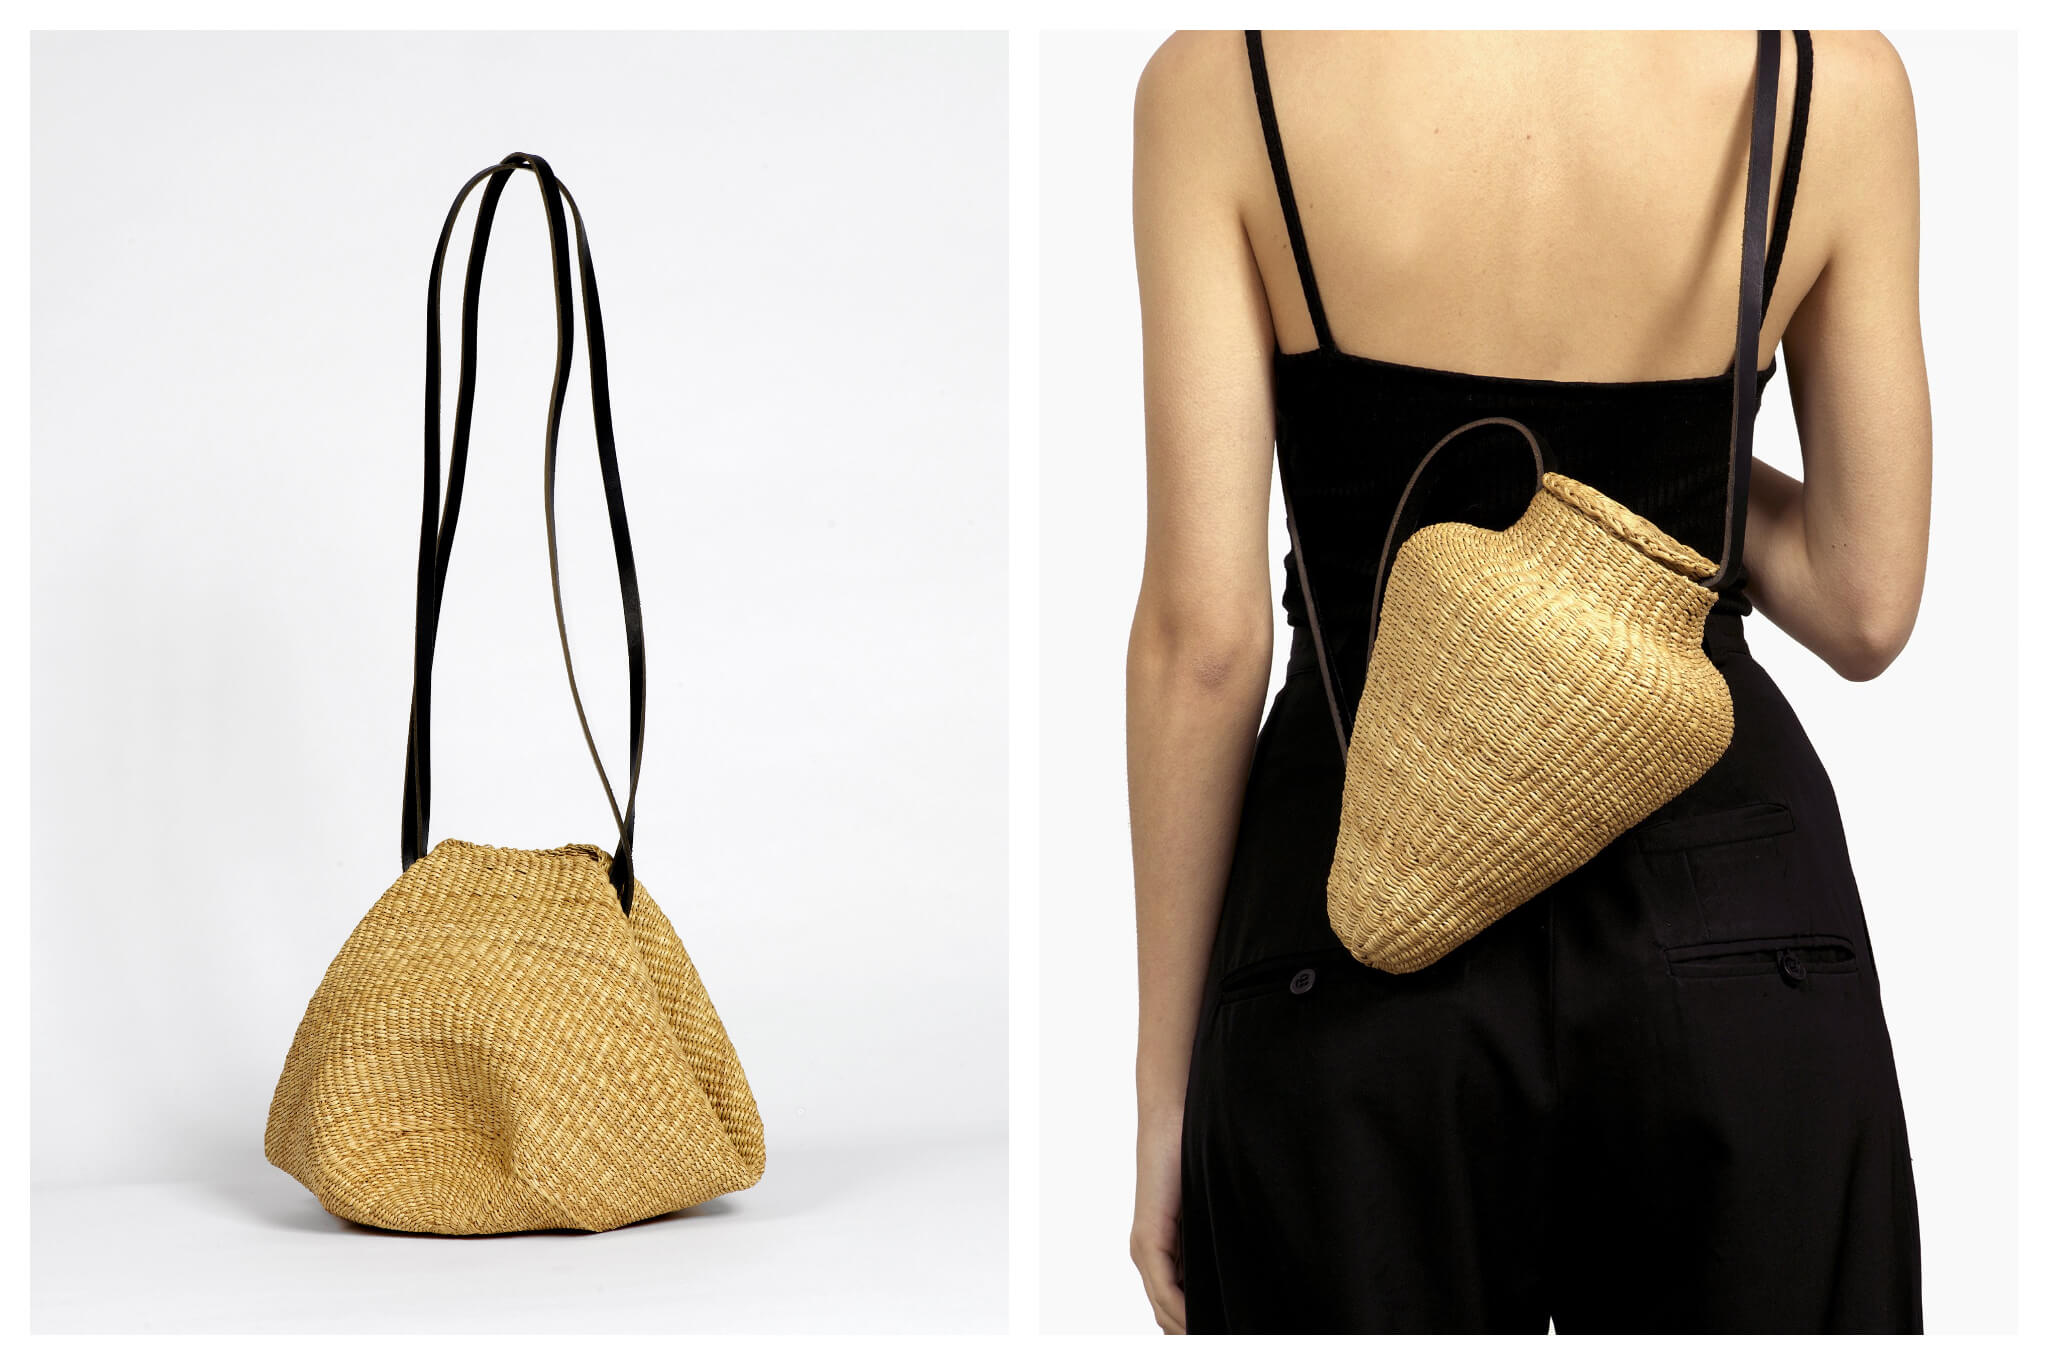 Left: A small wicker summer handbag with a long black strap from Inès Bressand, Right: A woman in a black jumpsuit wears a unique wicker bag with a long black strap around her torso